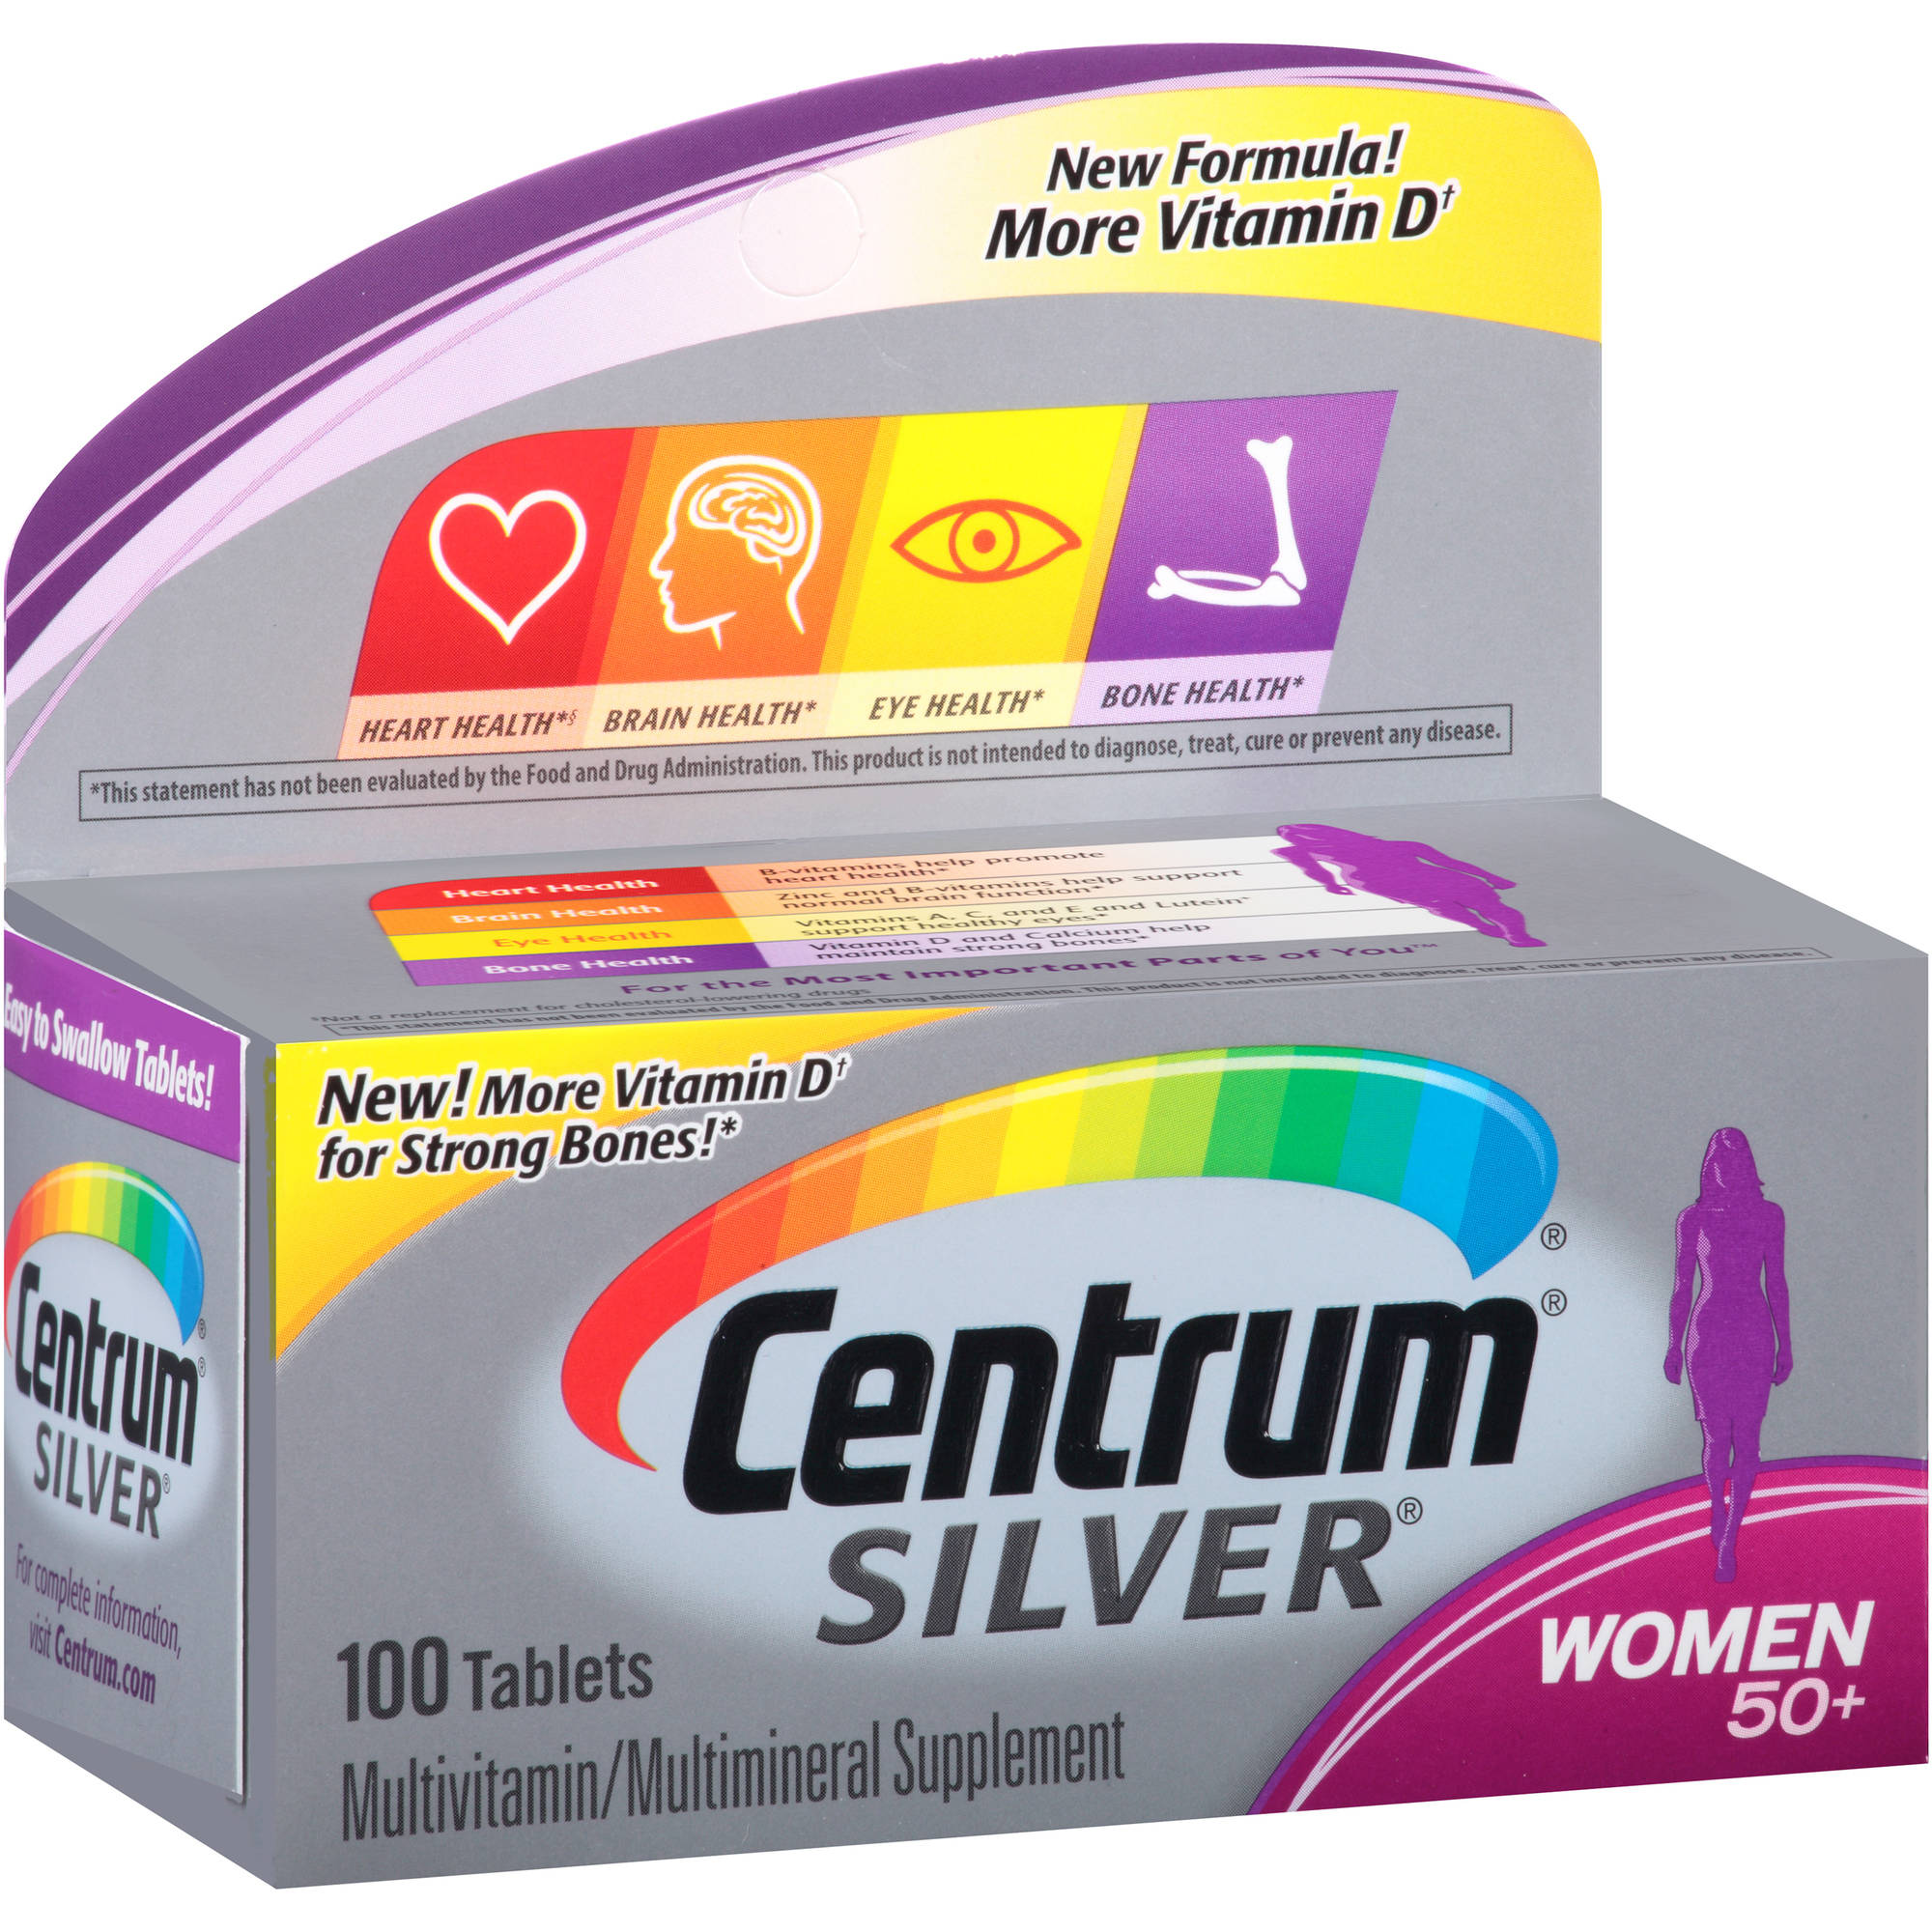 Centrum Silver Women 50+ Multivitamin / Multimineral Supplement Tablets, 100 count